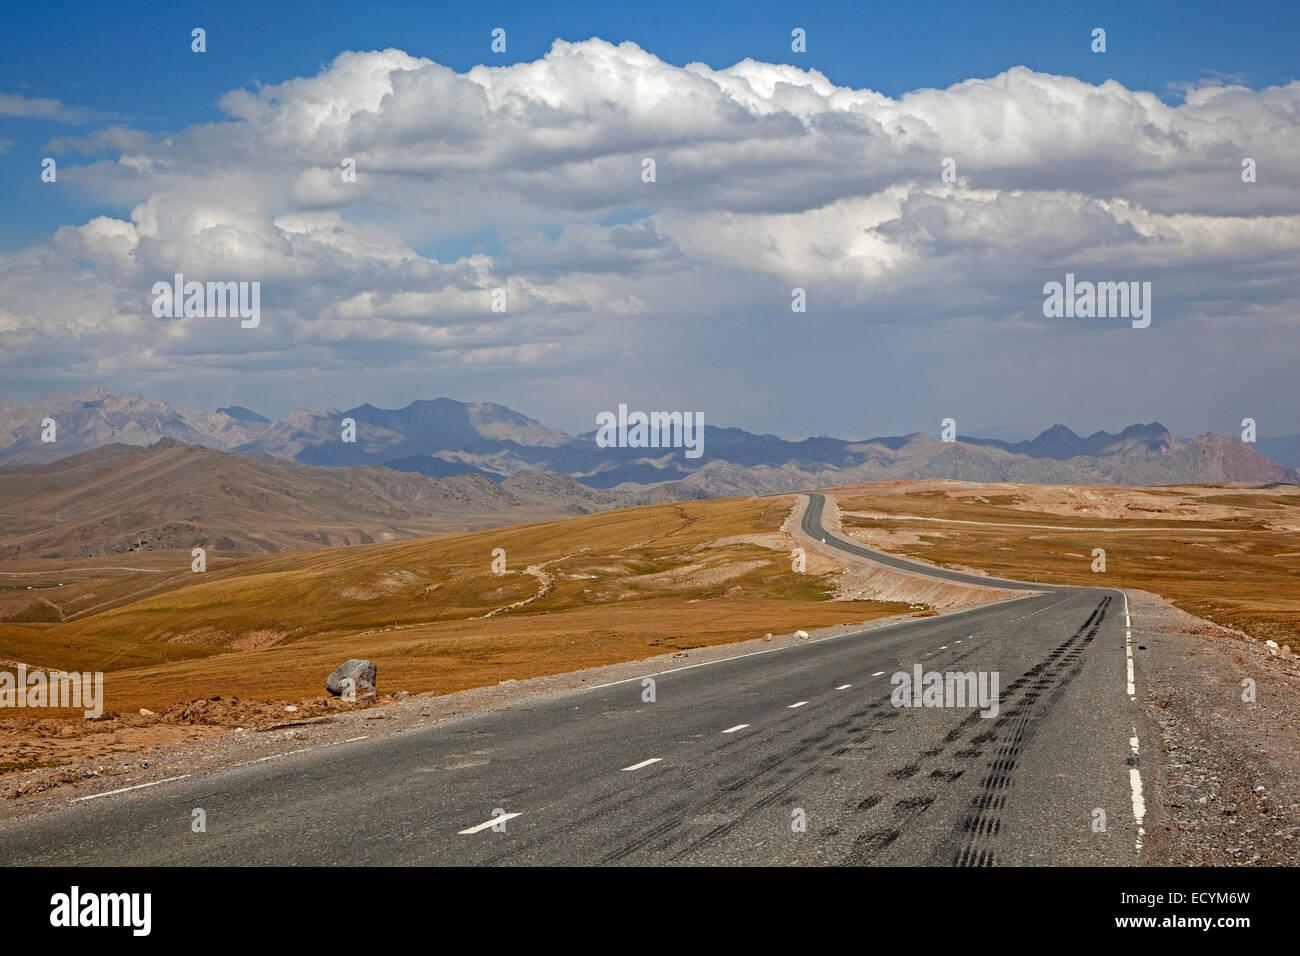 The Irkeshtam pass, border crossing between Kyrgyzstan and Xinjiang, China Stock Photo